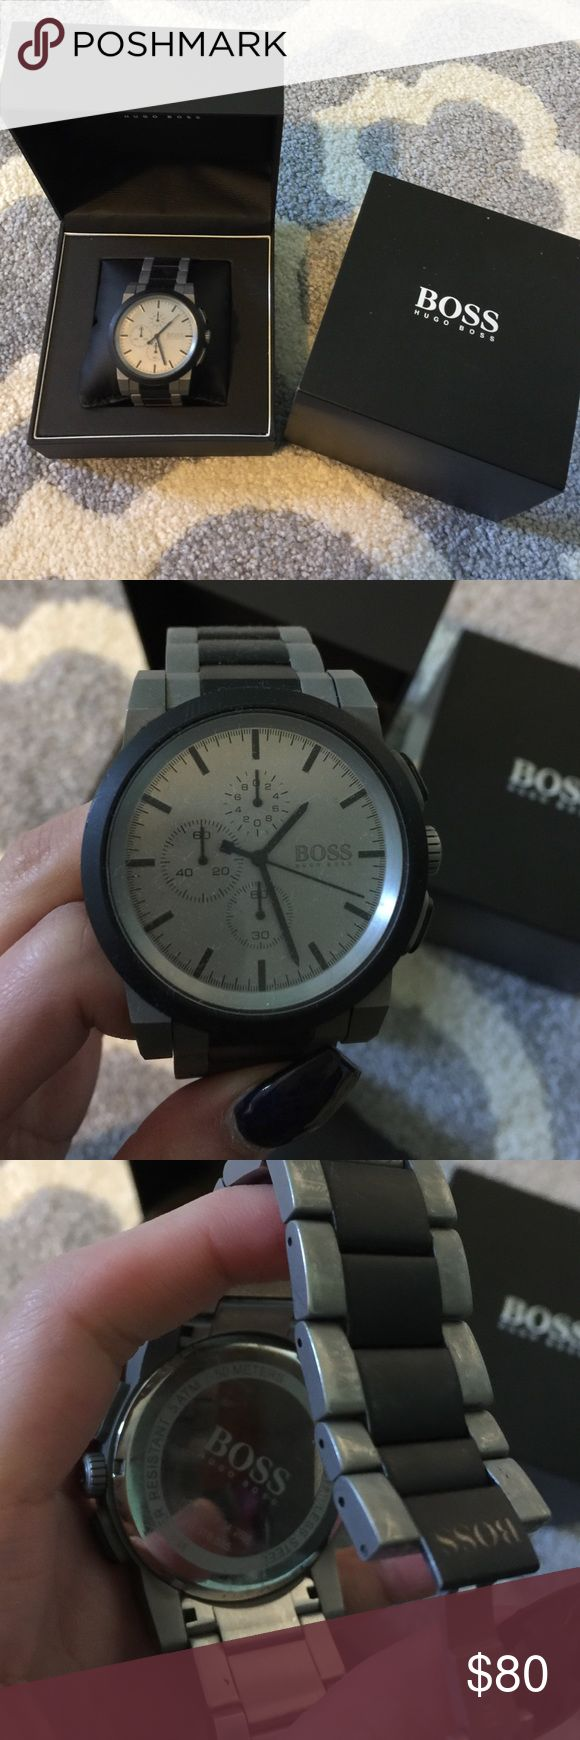 Hugo boss watch Gently used. Comes w box. Battery still working. Does not come with extra links. Taken 2 links out of original. Accessories Watches